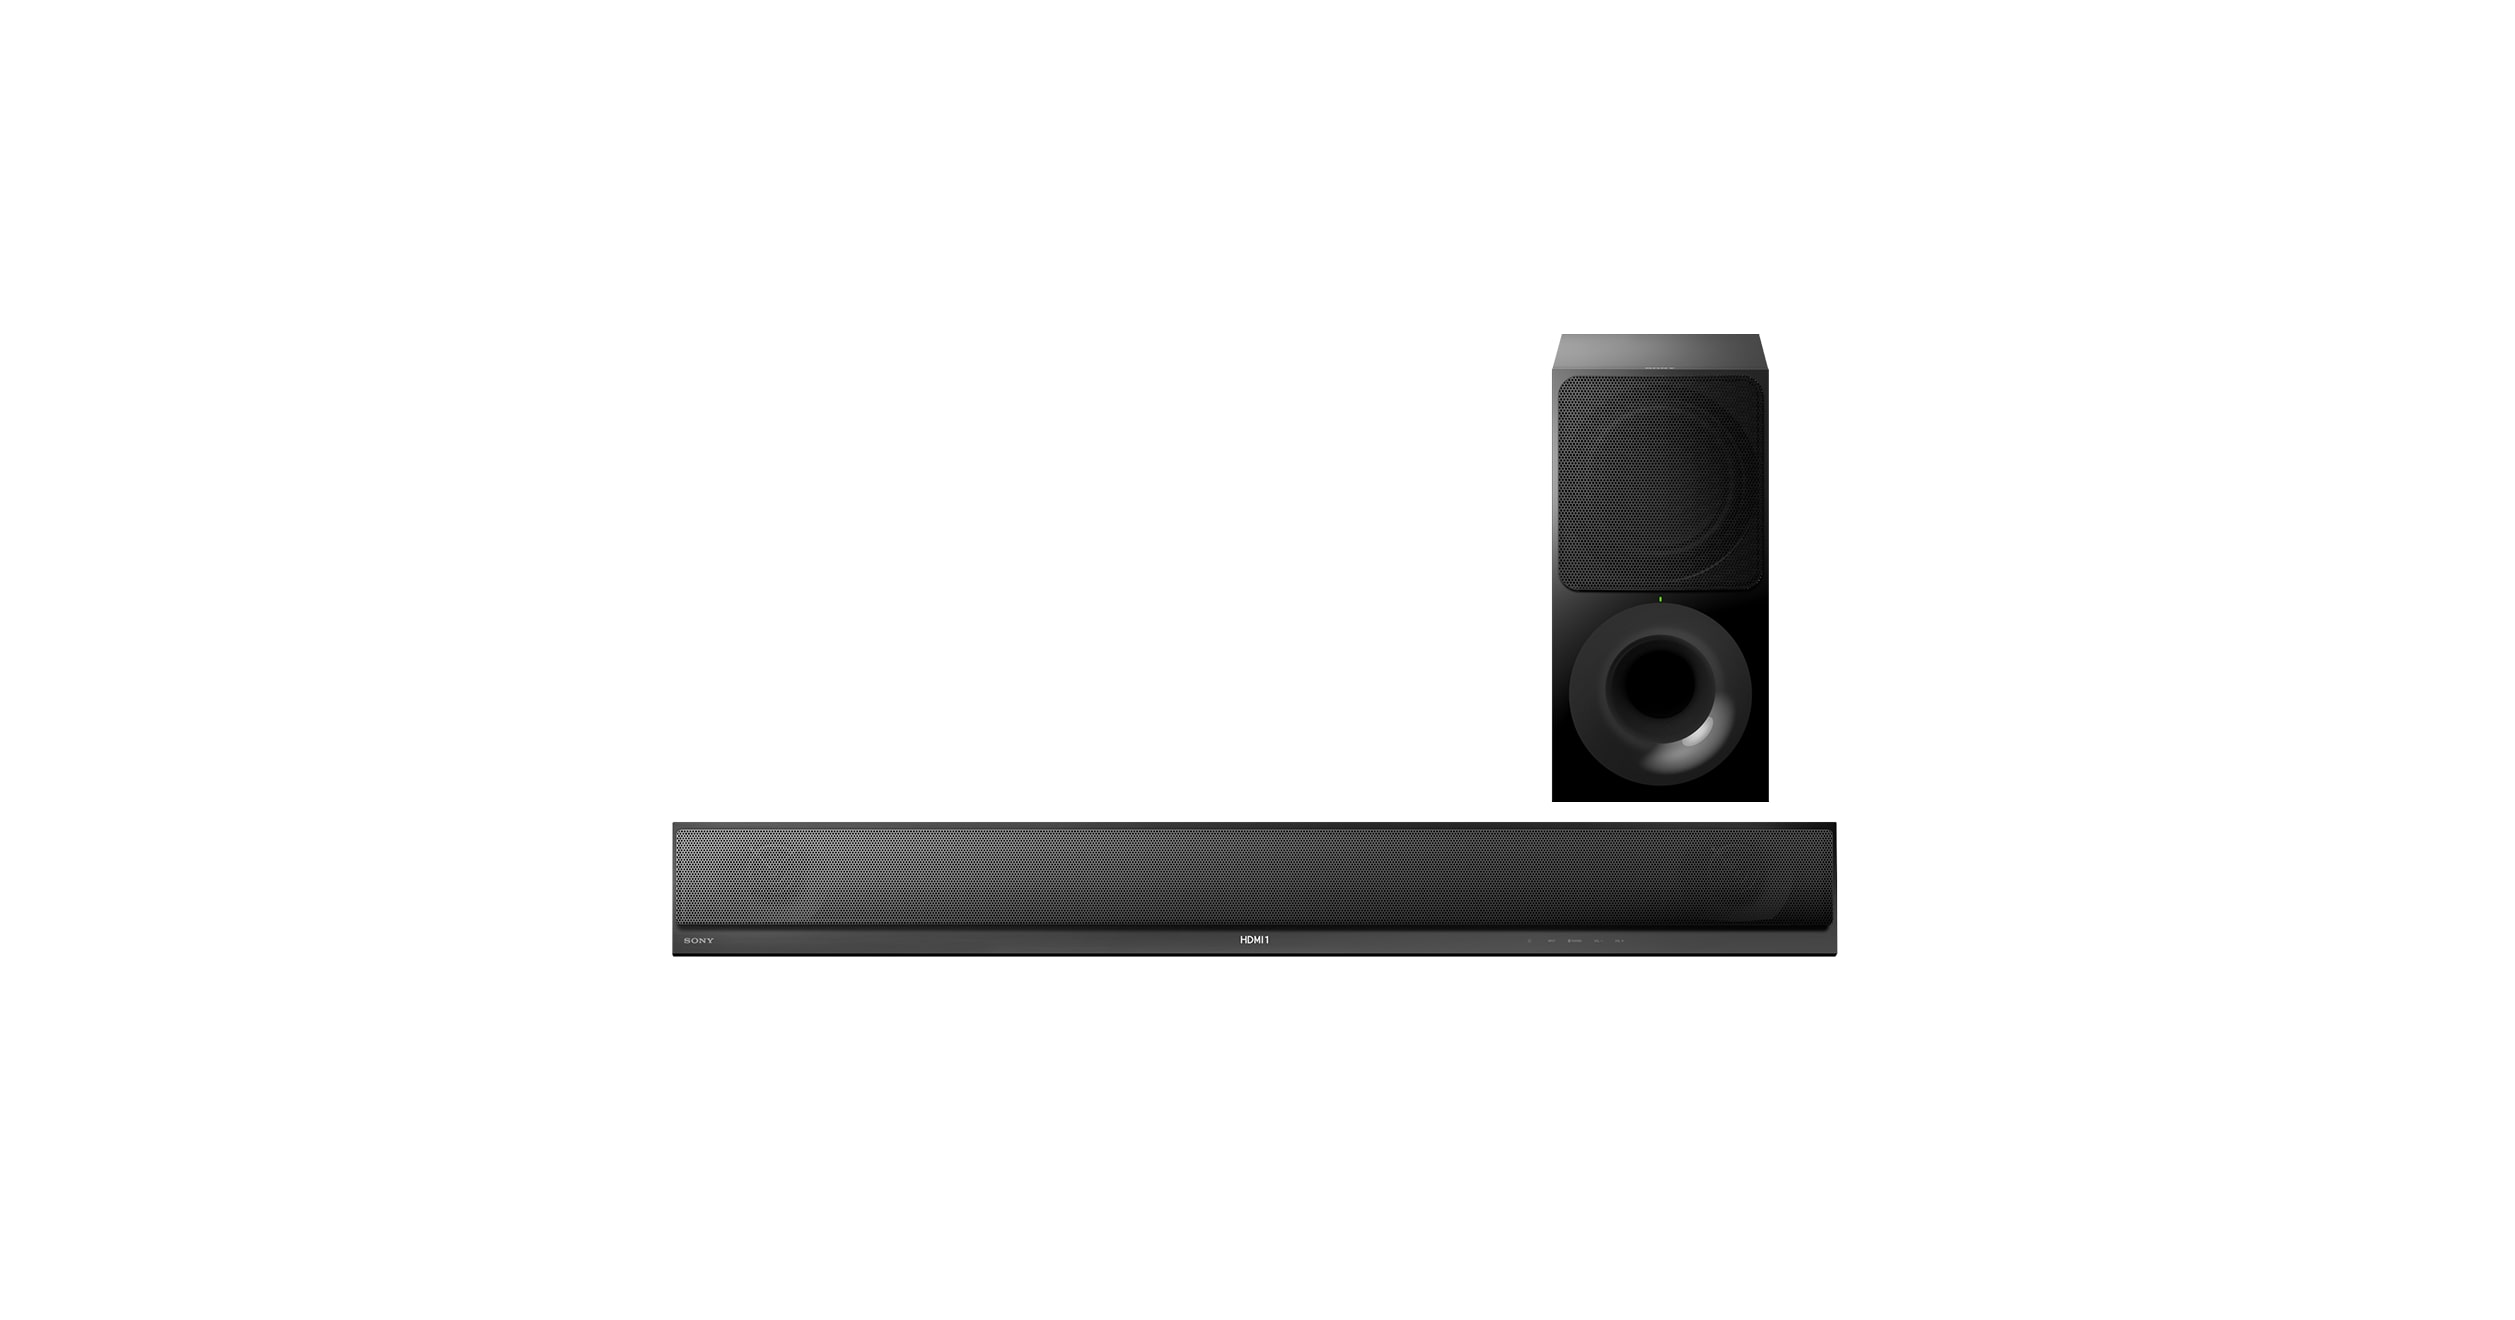 Tv Speaker Bar Usb Soundbar With Wi Fi Ht Ct790 Sony Us Wireless Network Diagram Home Entertainment